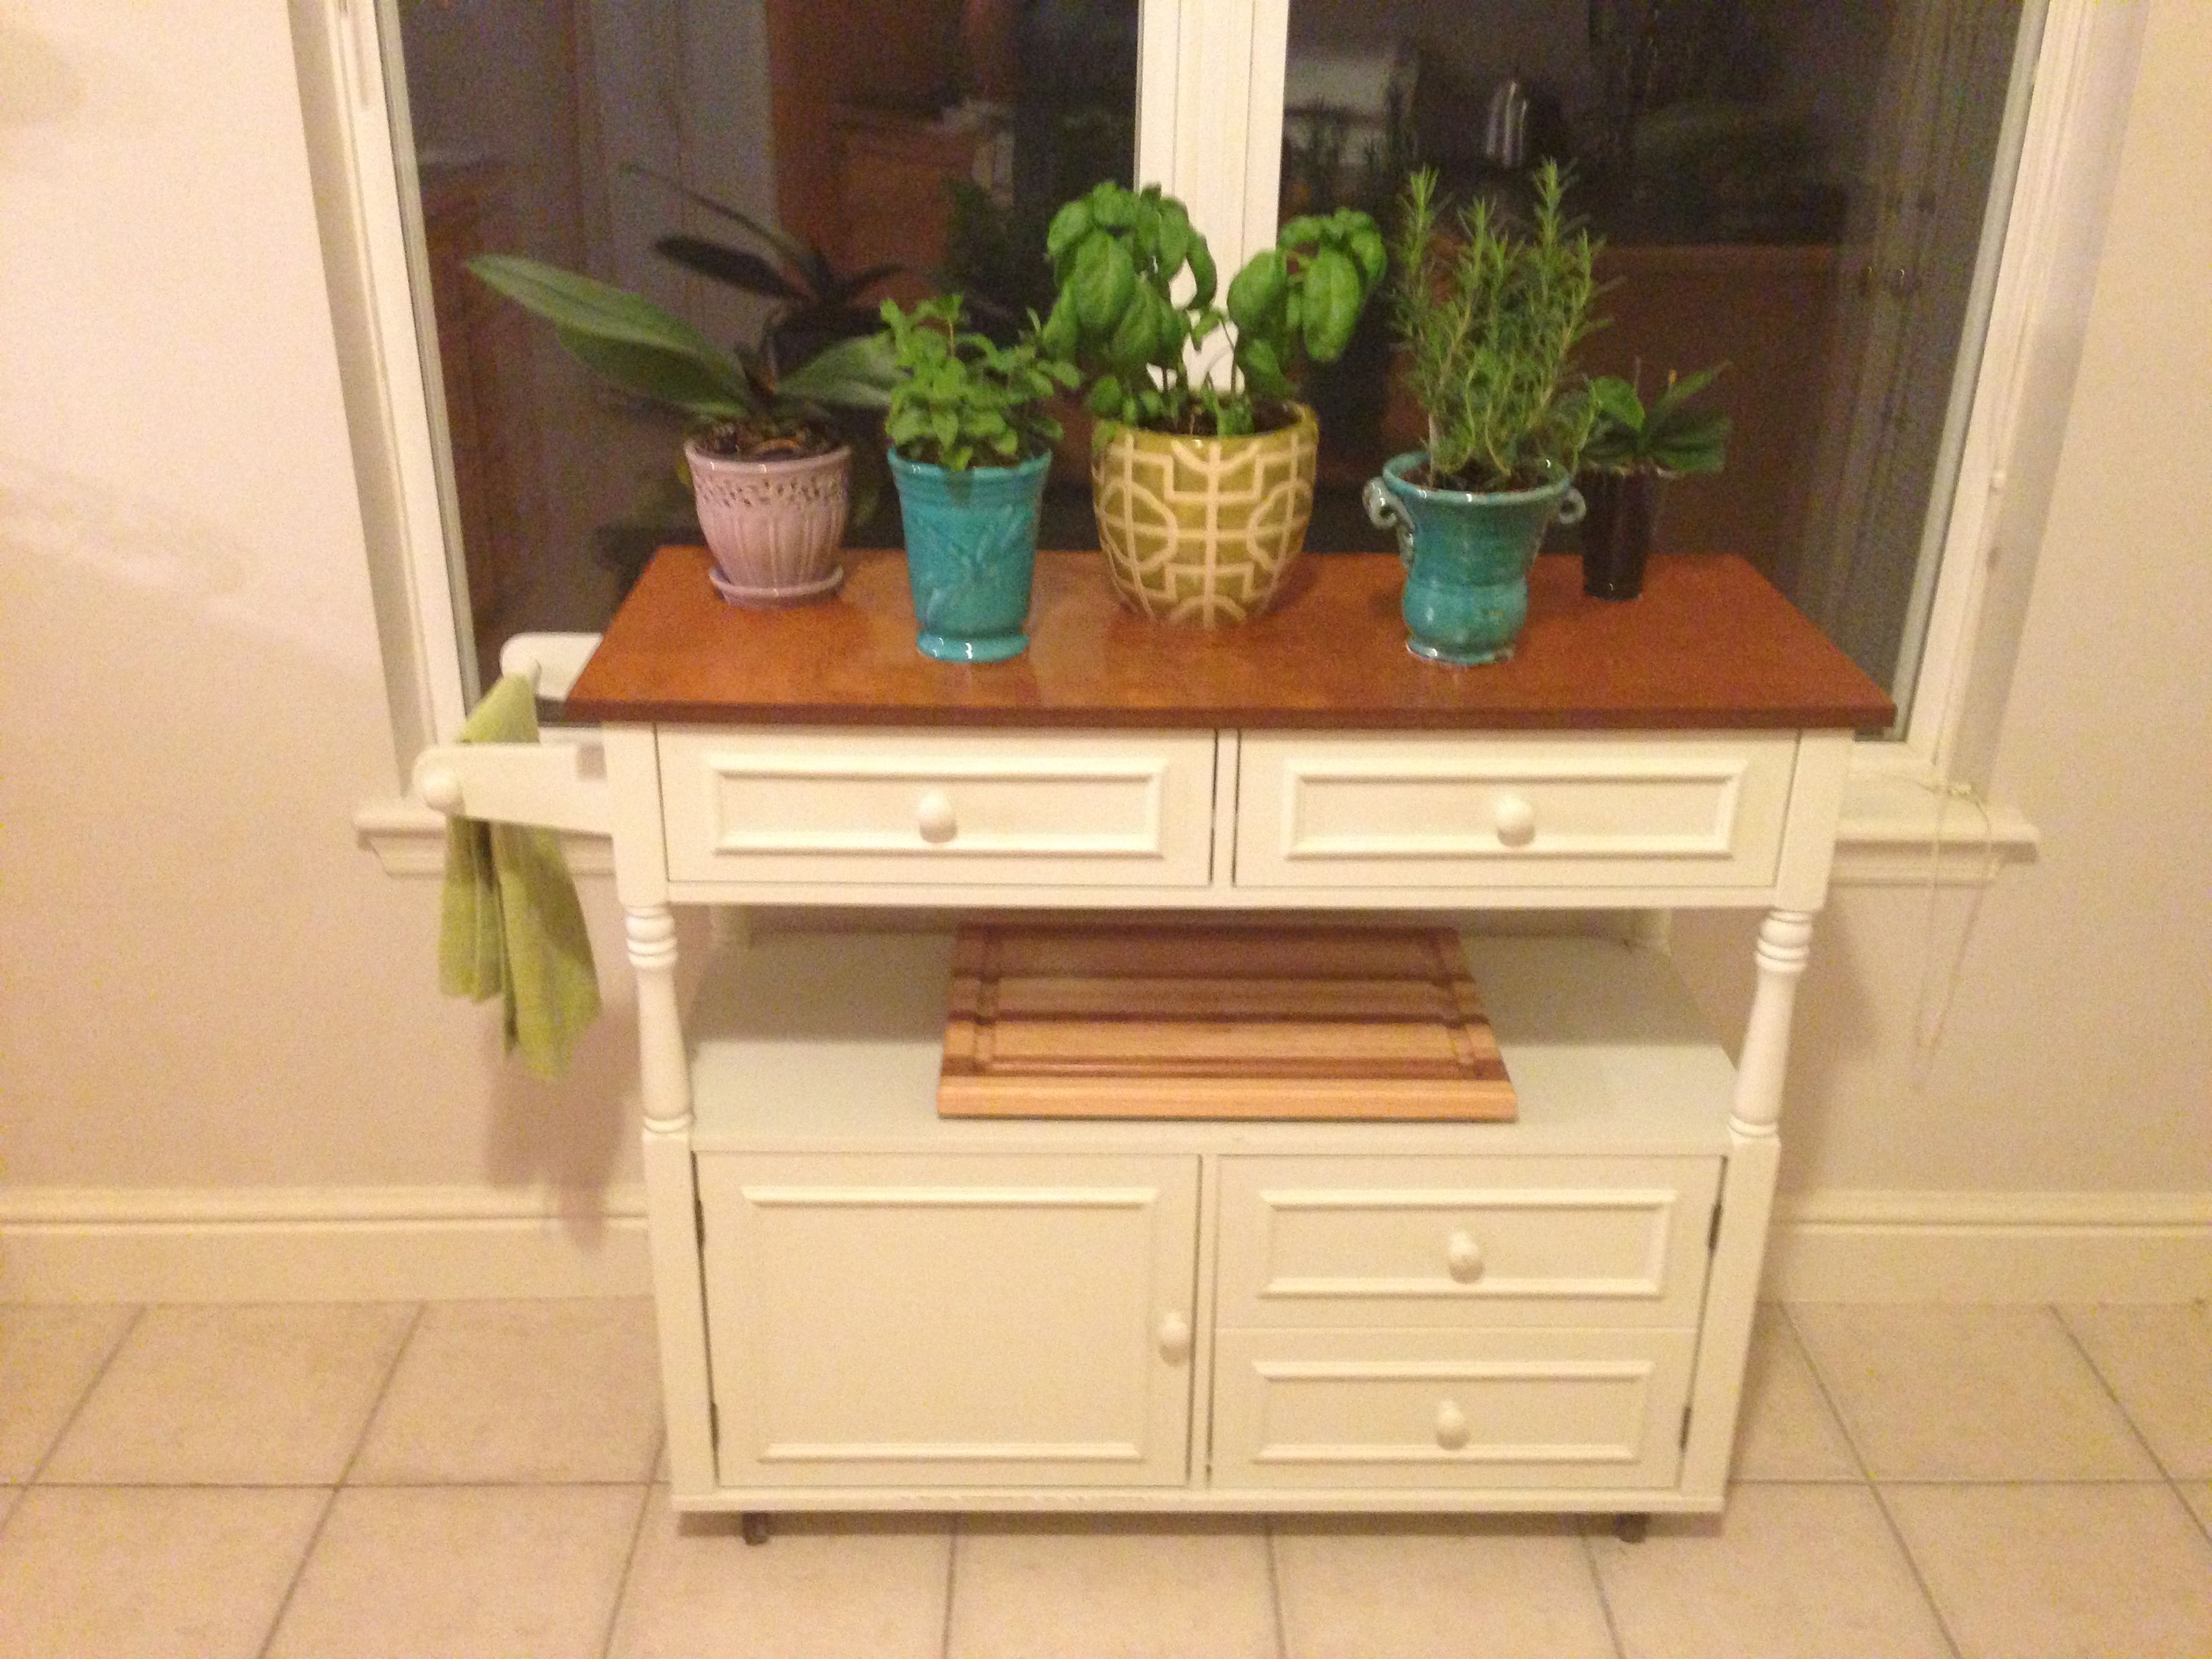 Spice up an old kitchen hutch by turning it into an herb table with